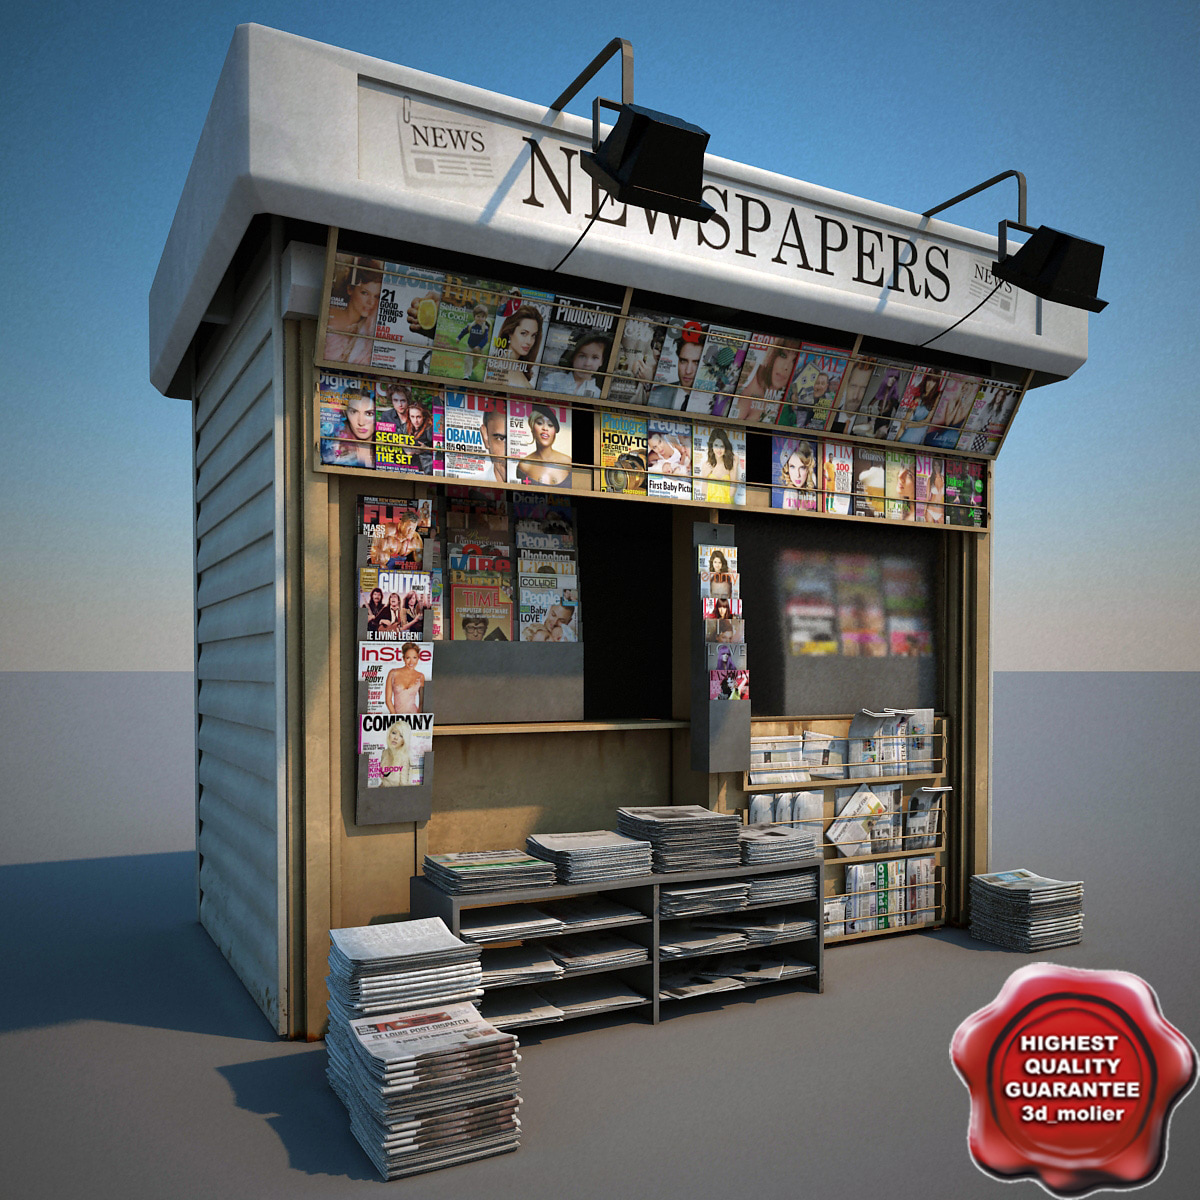 Newspapers_Shop_00.jpg